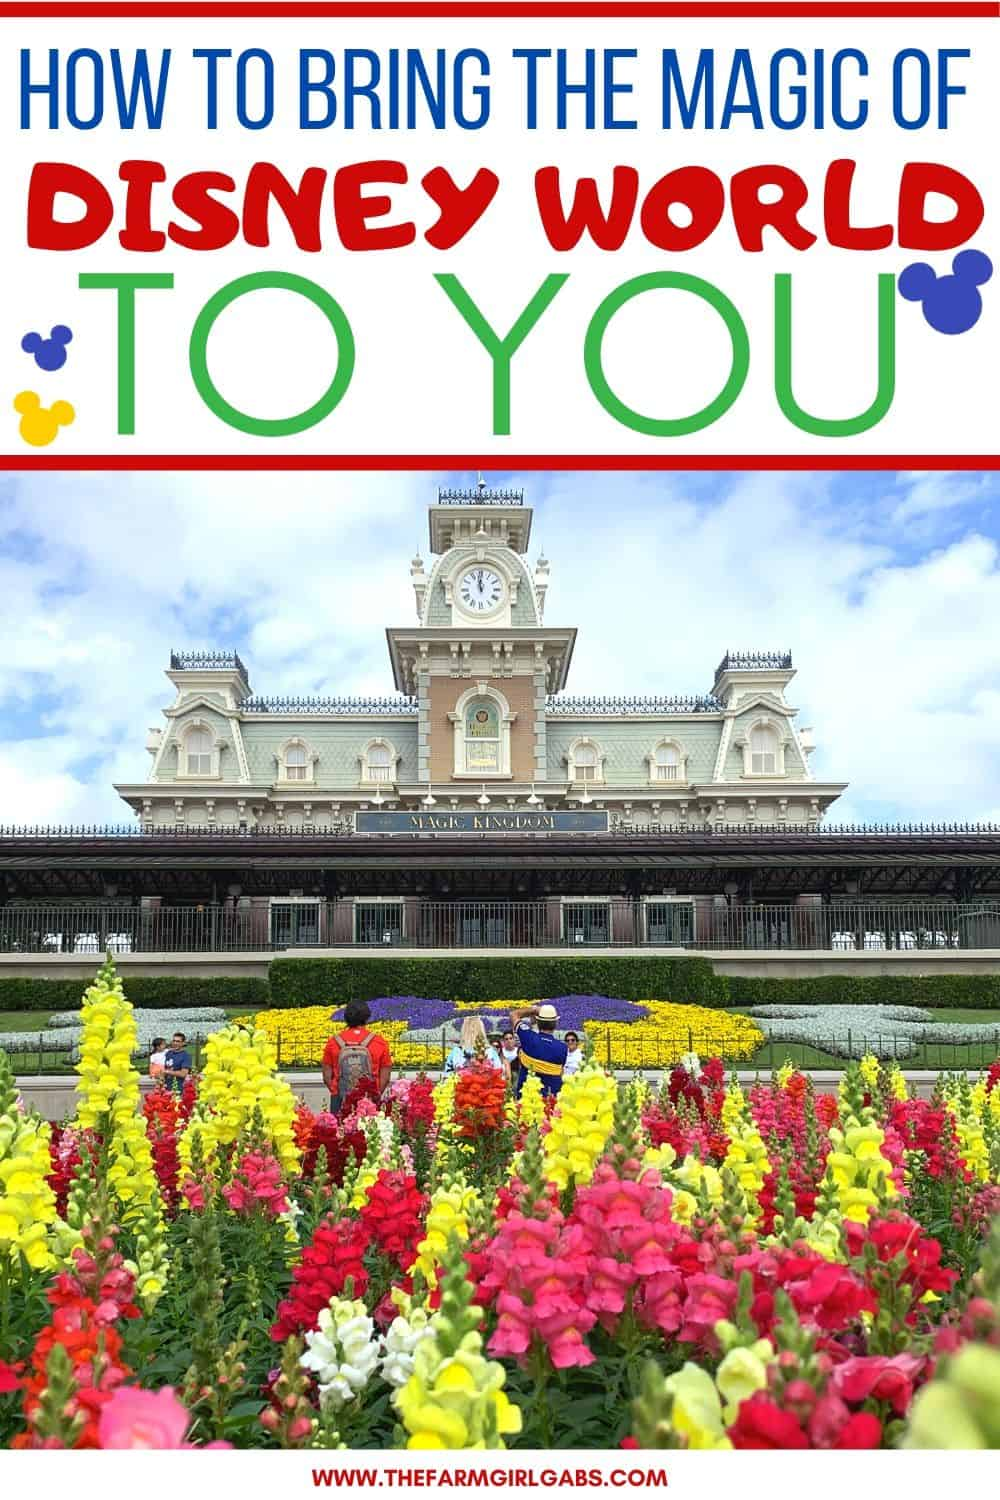 Disney Parks are closed! Now What? Missing Walt Disney World right about now? I totally understand. Bring the magic of Disney World to you. Here are 10 Ways To Cure The Disney World Blues when you can't visit the parks. From listening to Disney music to binge-watching Disney Plus, there are fun ways to cure our Disney World blues. #disneyworld #disneyplanningtips